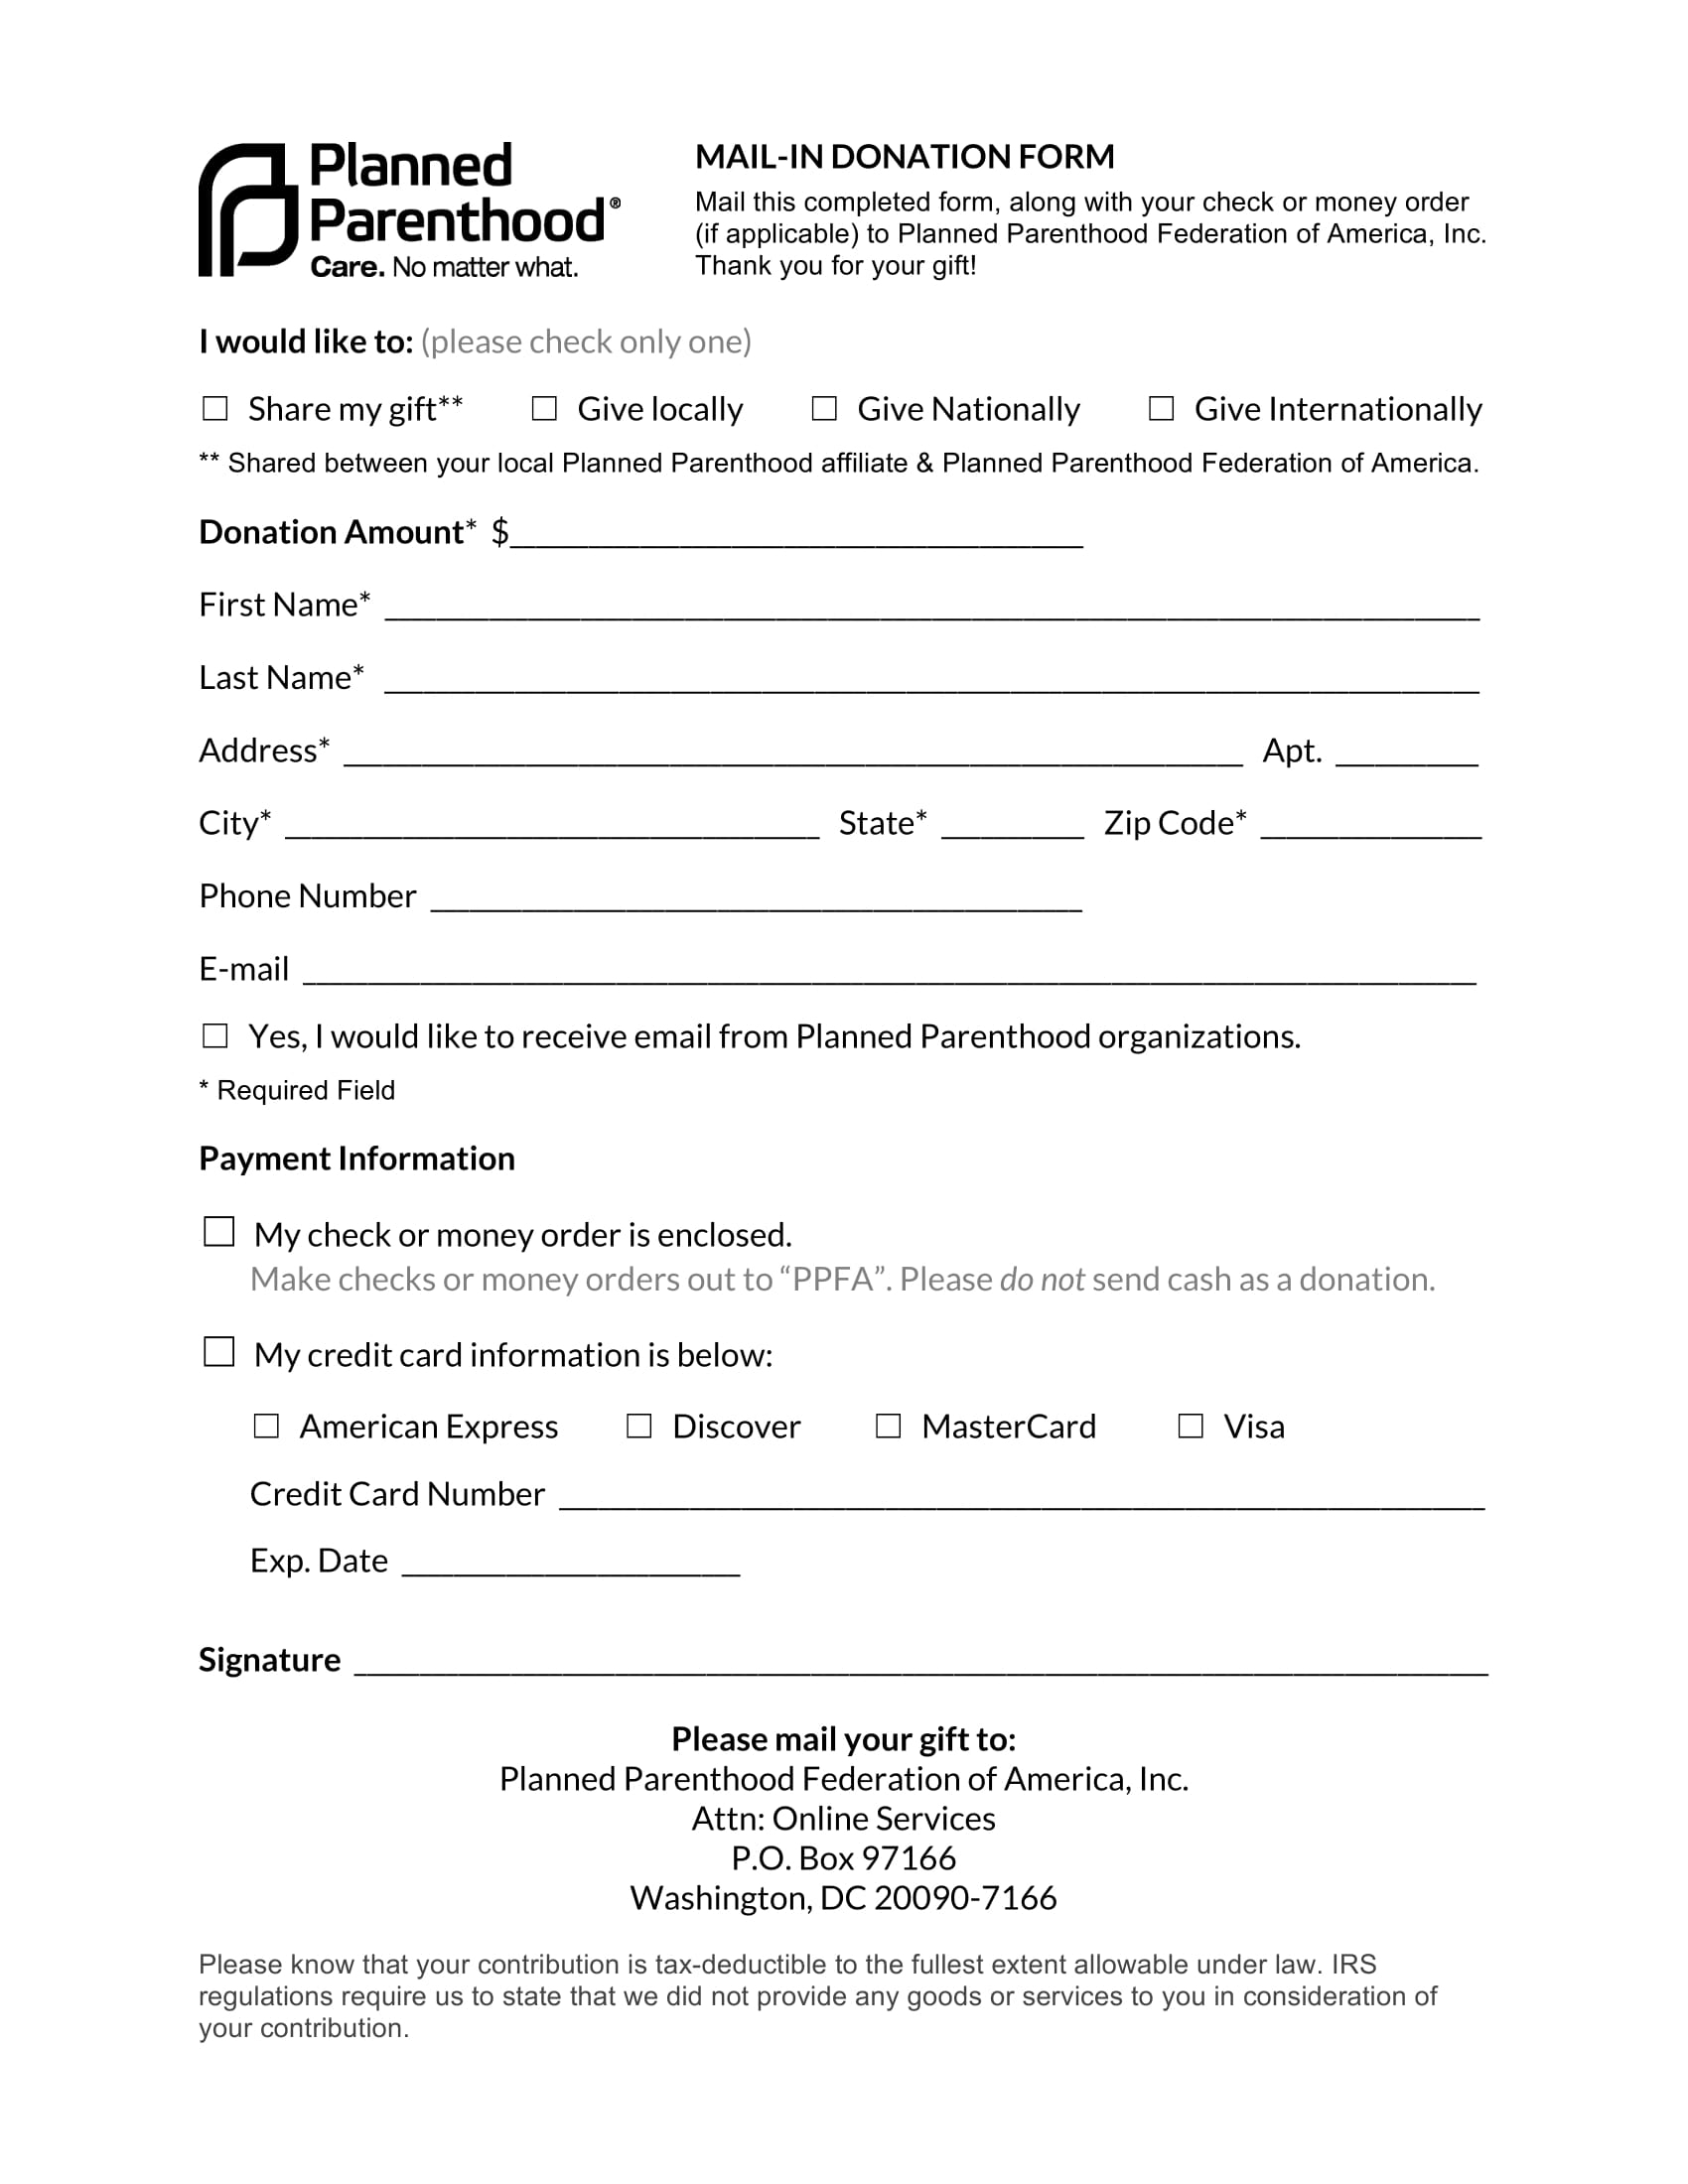 mail in donation form 1